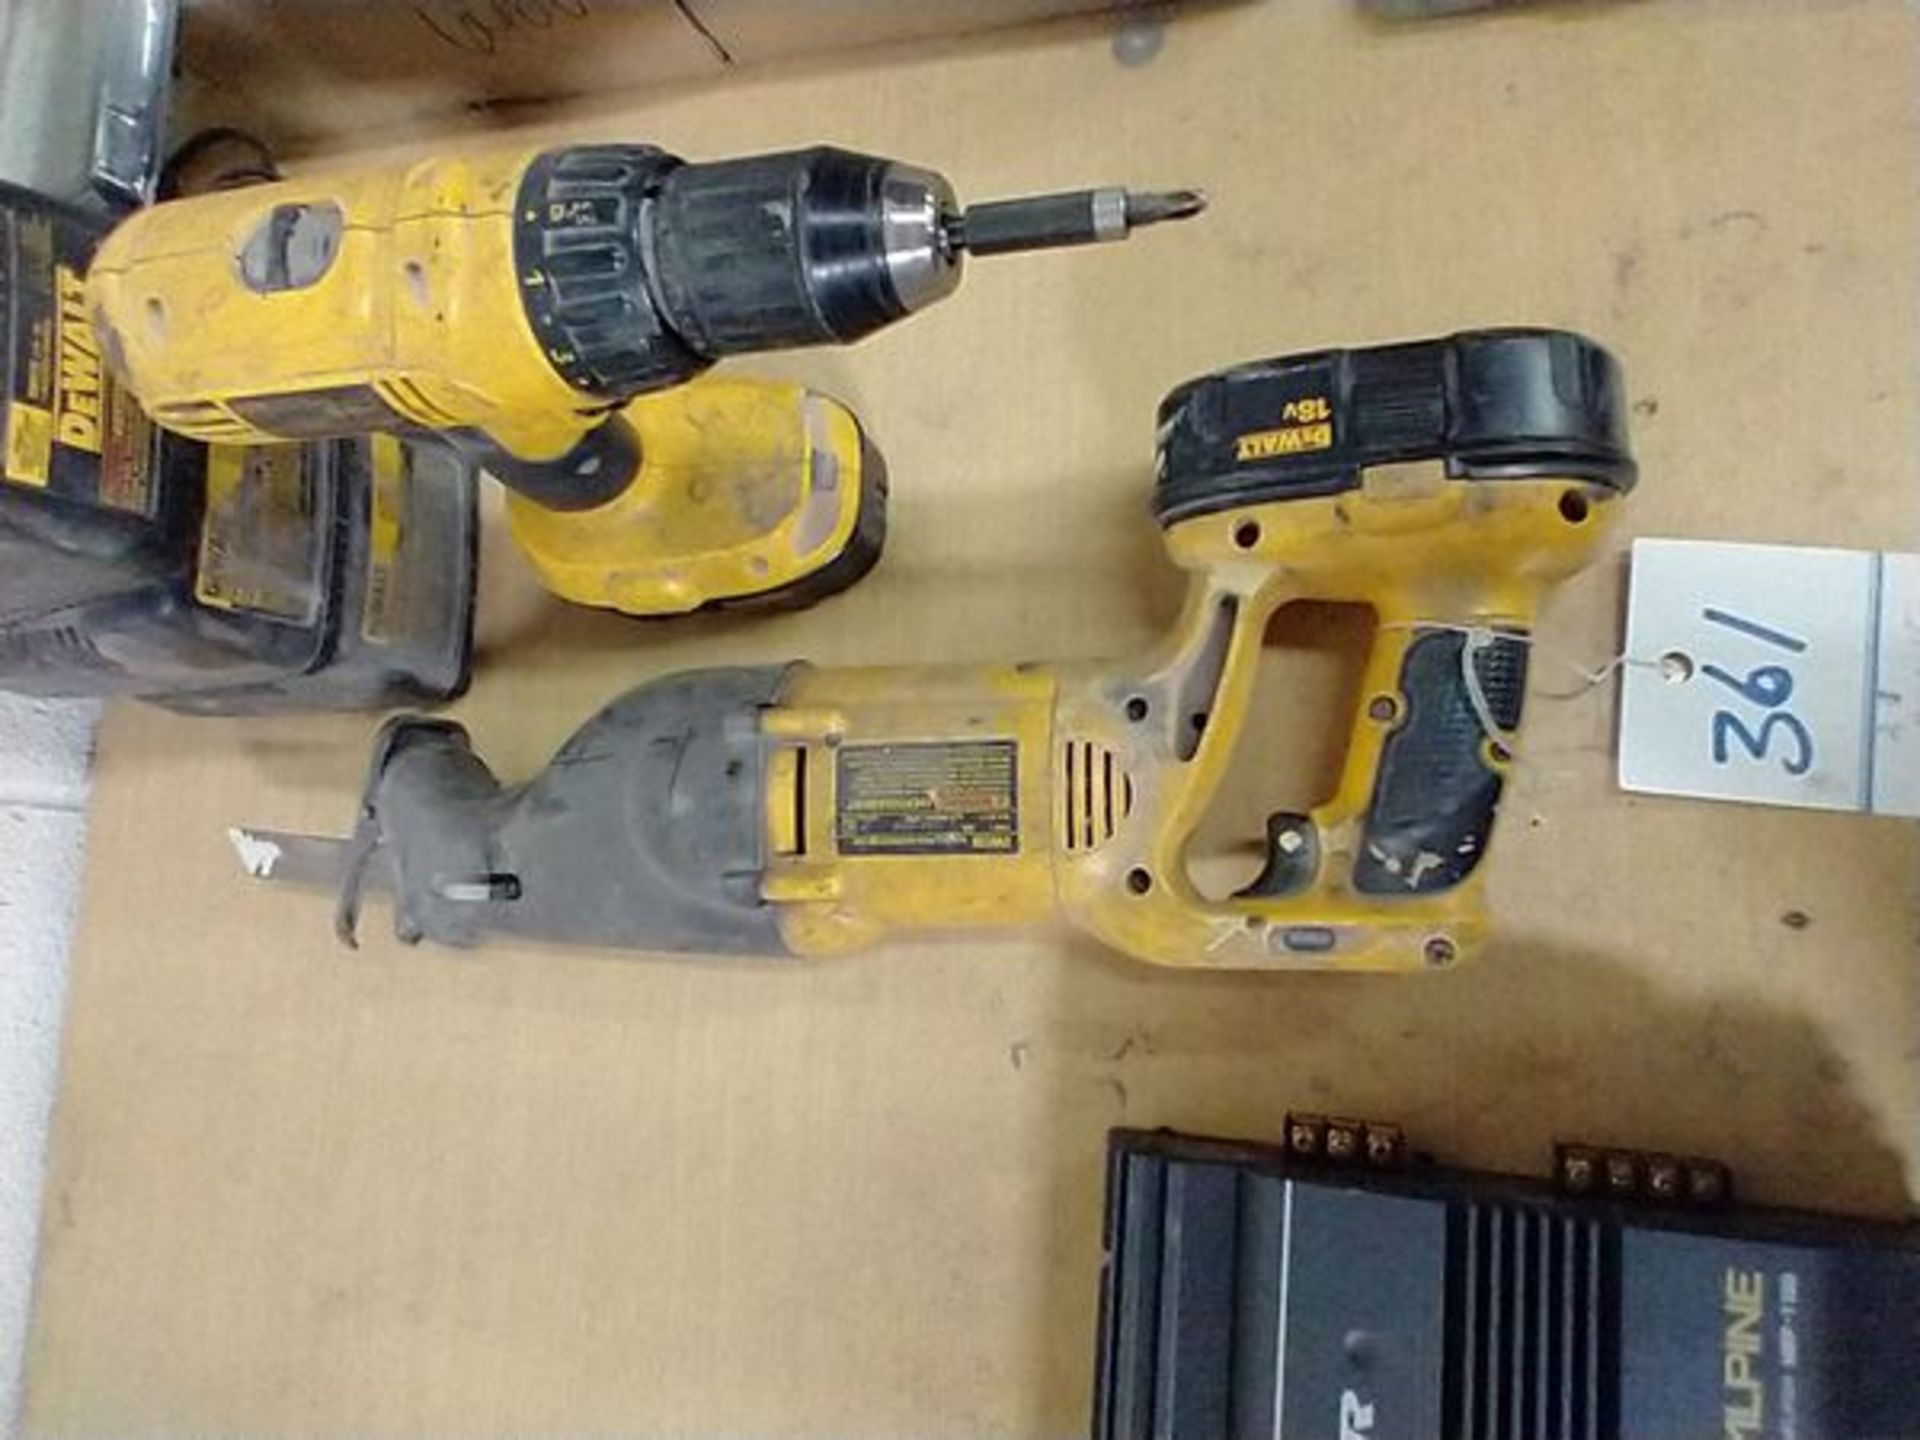 DEWALT DC970 18V DRILL AND DW938 18V RECIPROCATING SAW WITH CHARGER - Image 4 of 4